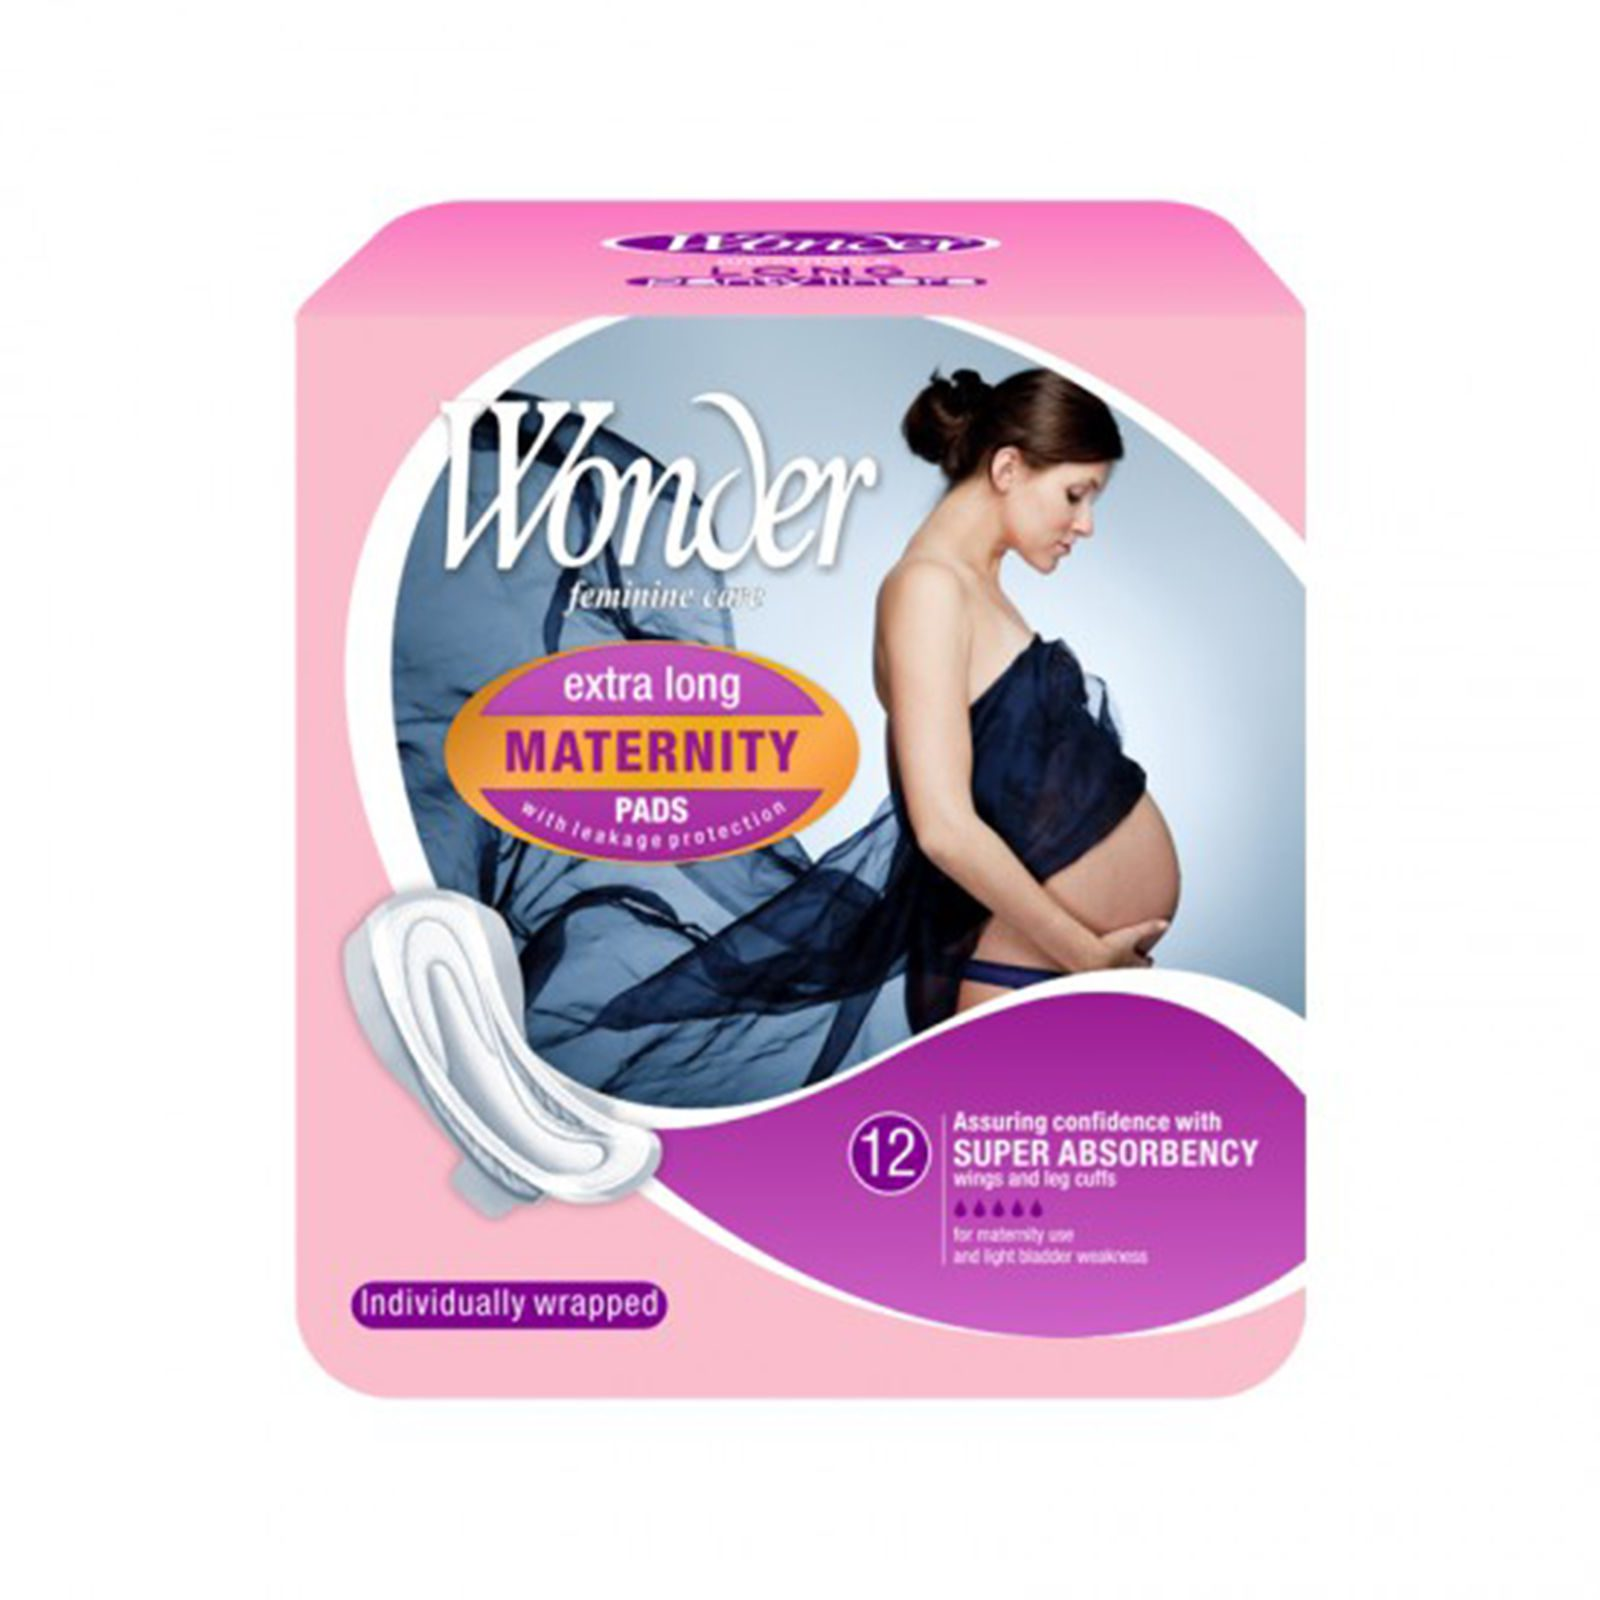 Maternity Pads Extra Long with Wings 12Pk Wonder